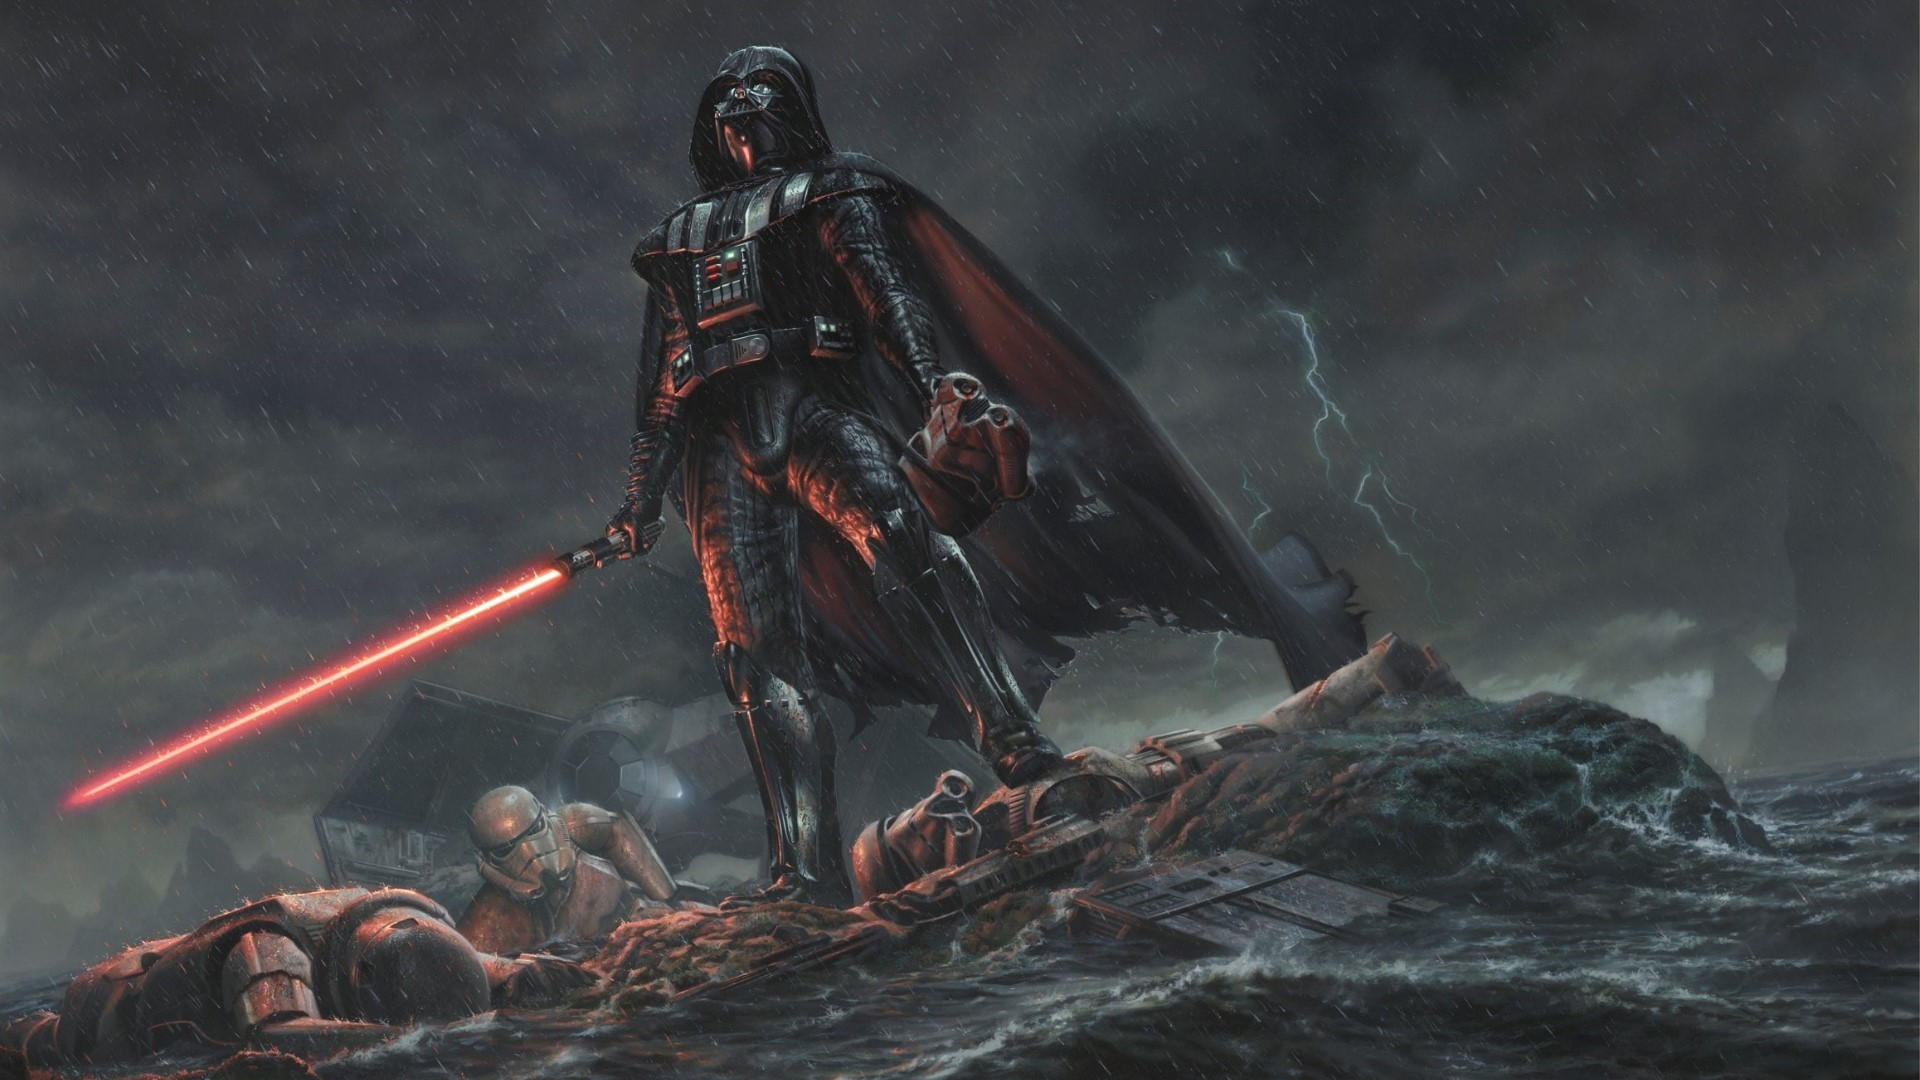 1920x1080 OtherA pretty badass Vader wallpaper I found.